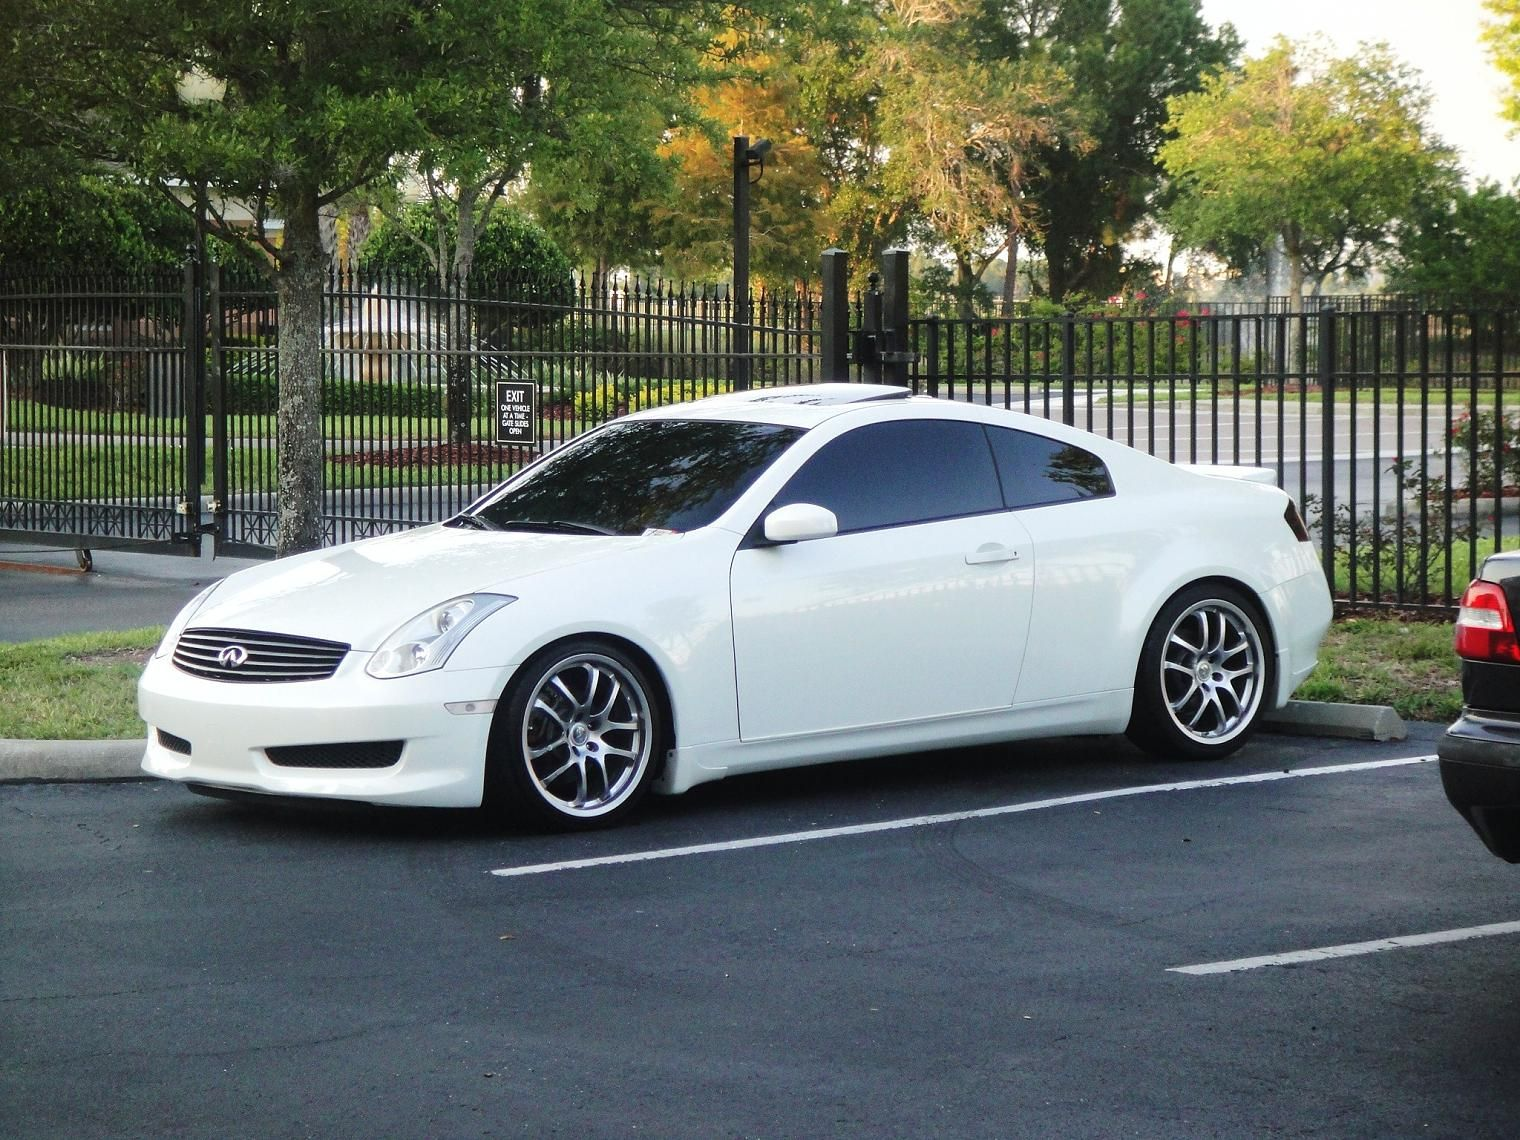 05 infiniti g35 coupe black google search cars i wish i could g37 coupe lowered google search vanachro Gallery